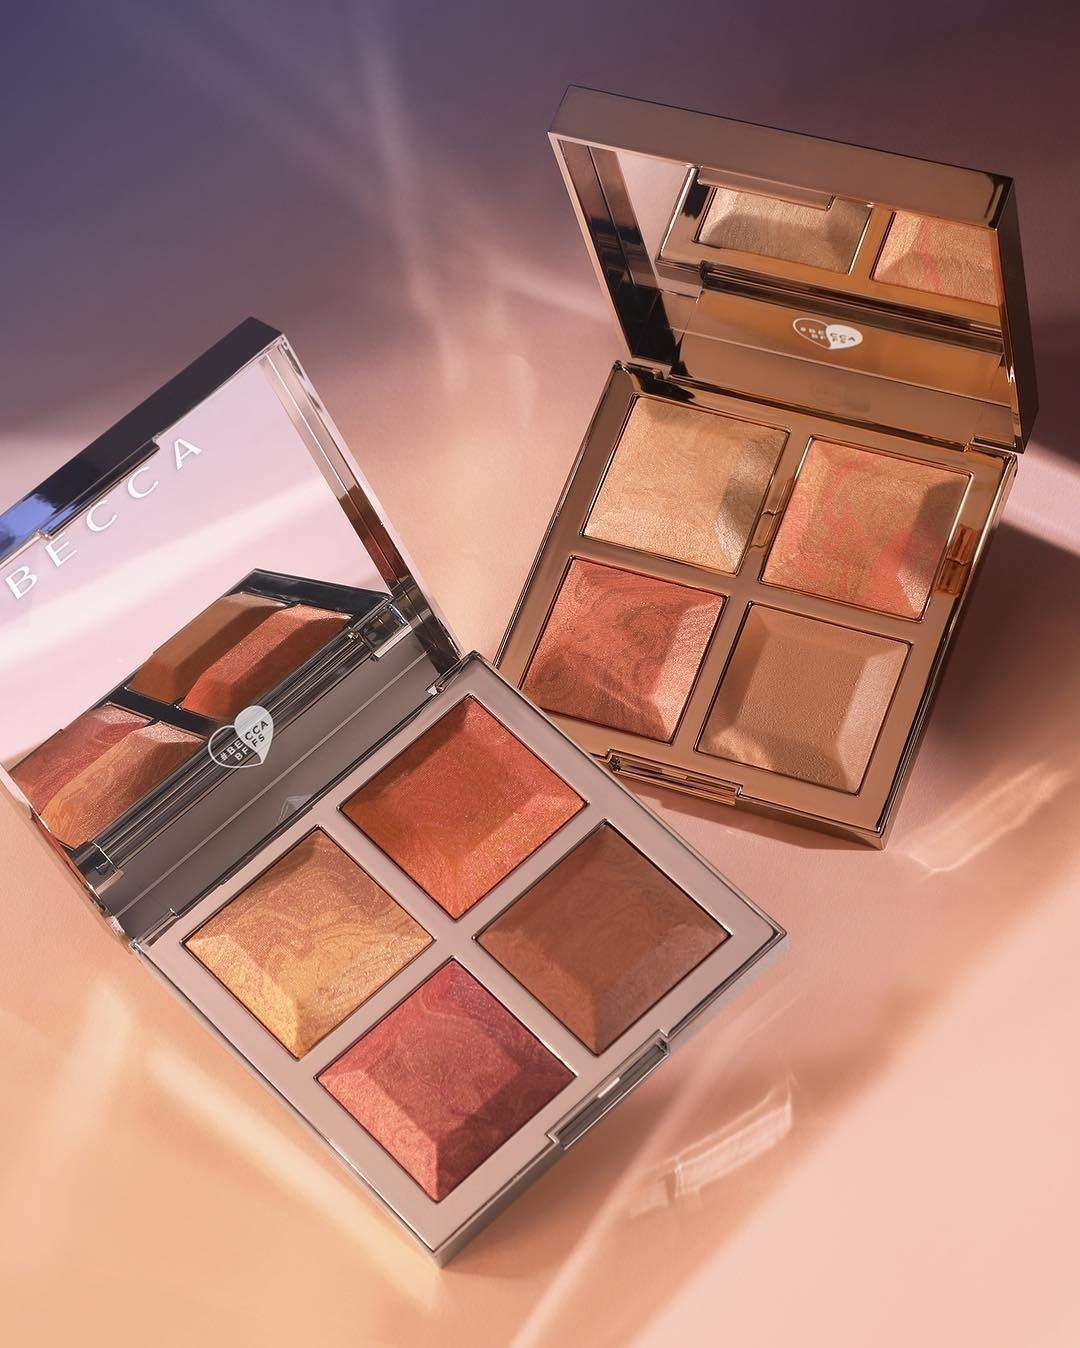 5eb89b9e316a Becca Cosmetics' collab with Khloé and Malika features two bronze, blush,  and glow palettes with four, gorgeous buildable shades. Because each  palette has a ...